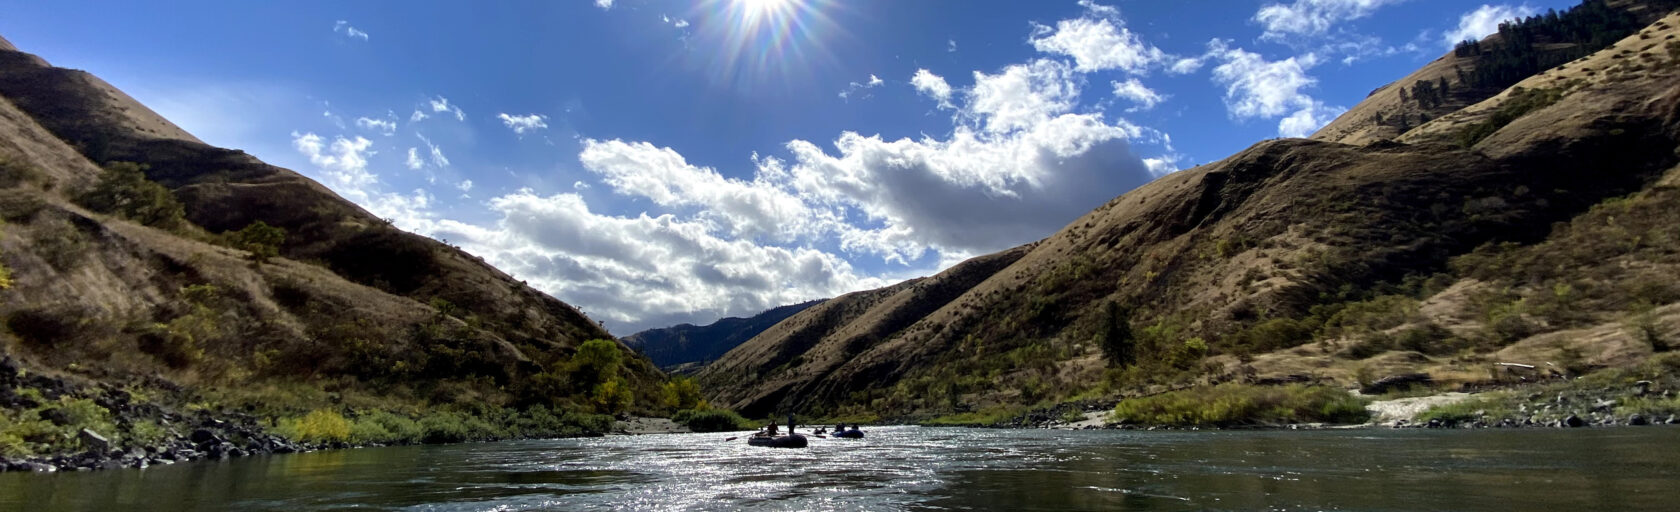 Raft going down the Salmon River